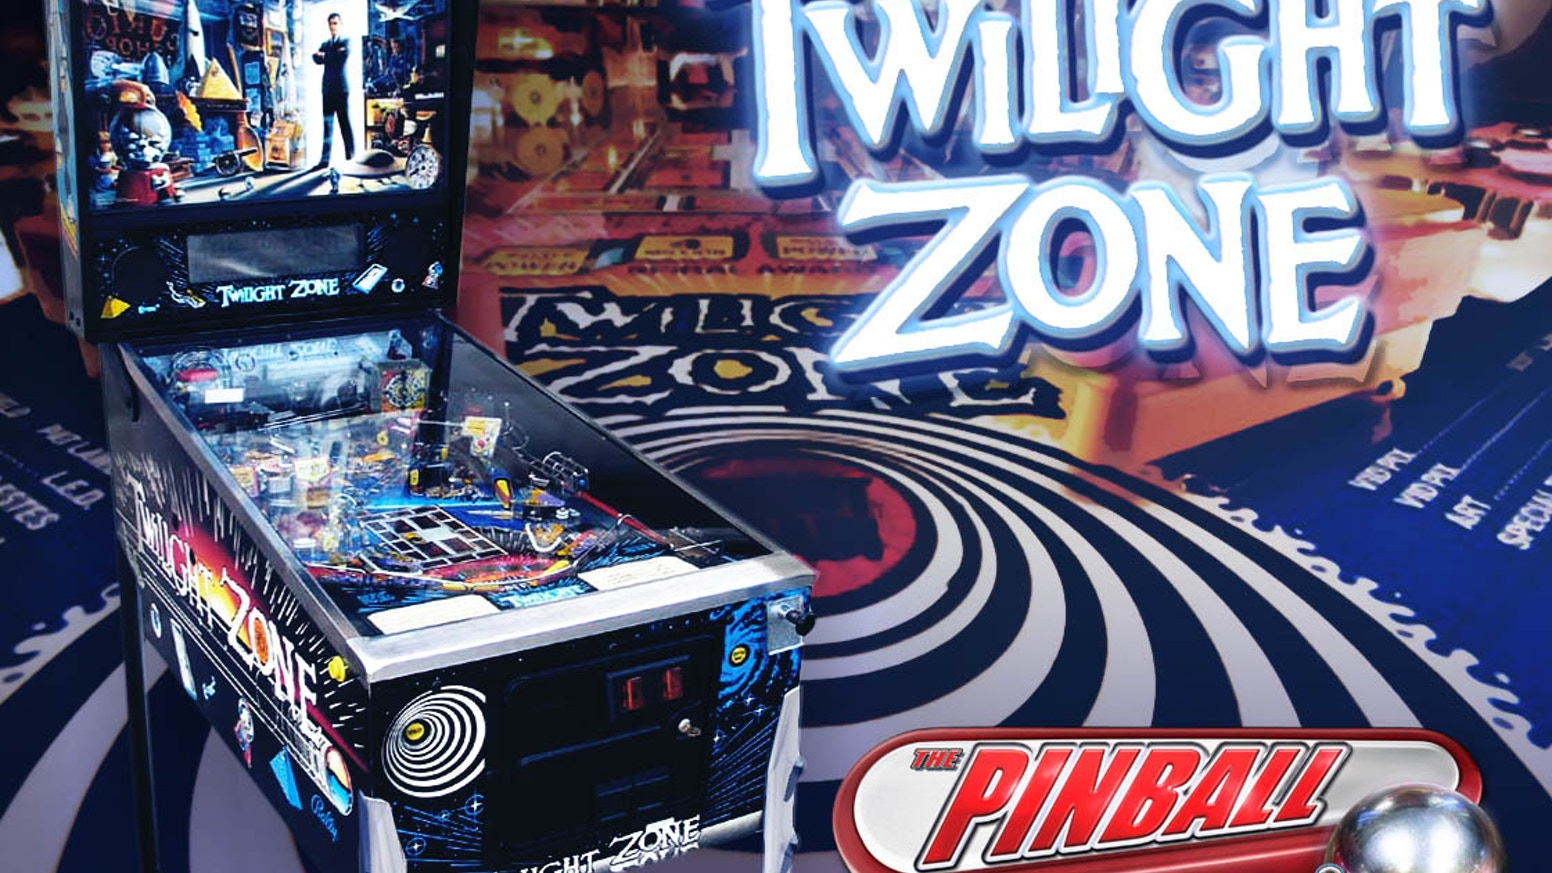 Help us bring The Twilight Zone pinball table to game consoles and mobile devices for a whole new generation to enjoy.